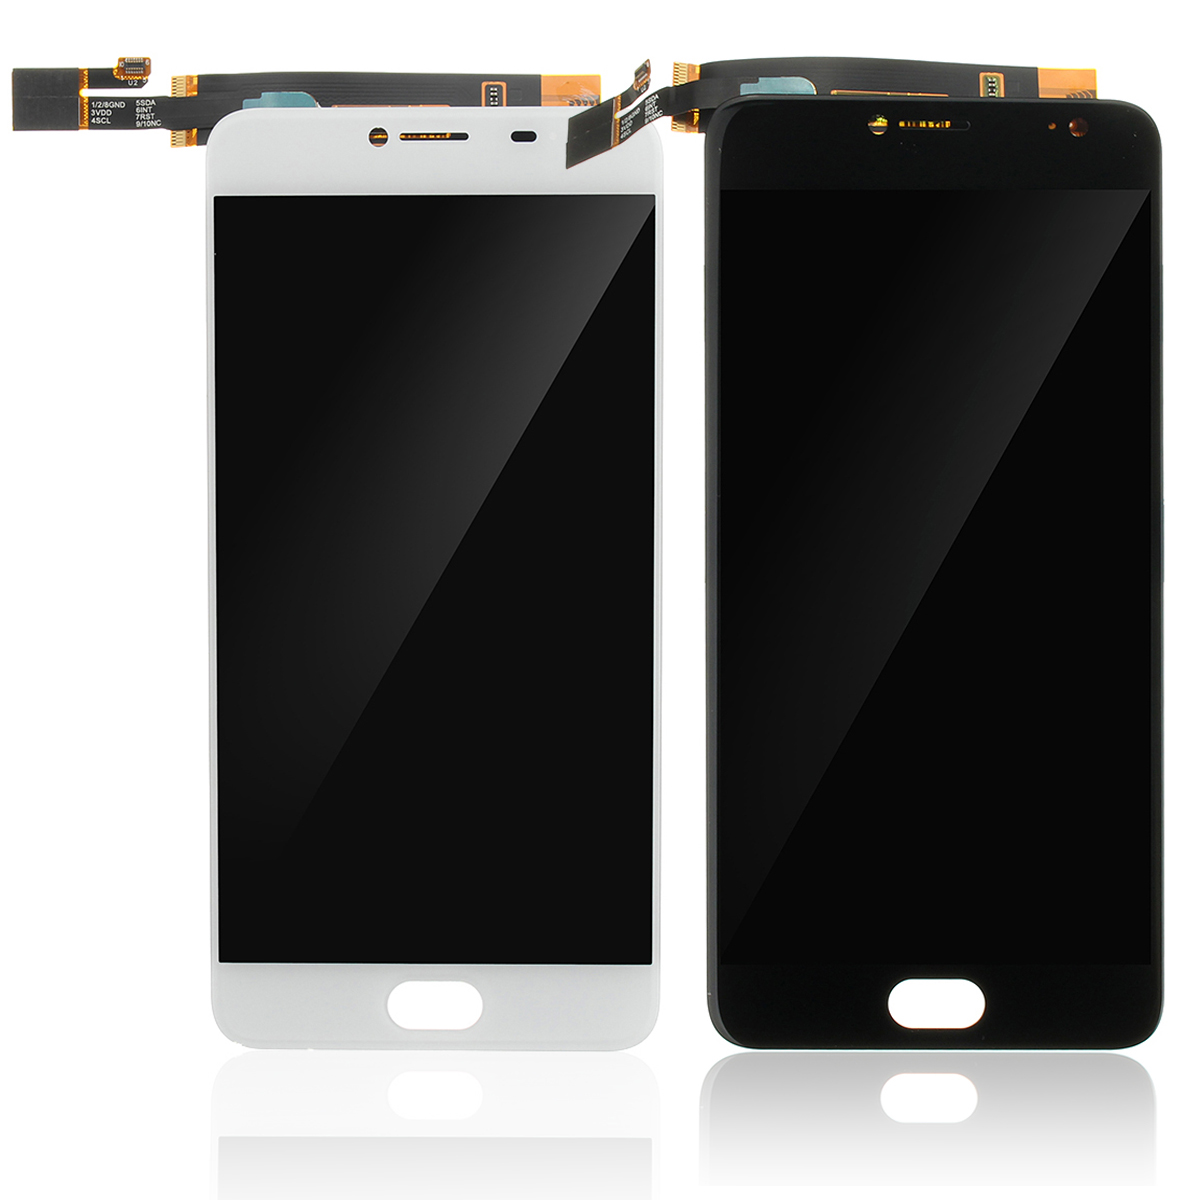 LCD Display Screen For Umi UMI Z/Z Pro Mobile Phone Digitizer touchs HD Screen Assembly Glass Panel Replacement Parts